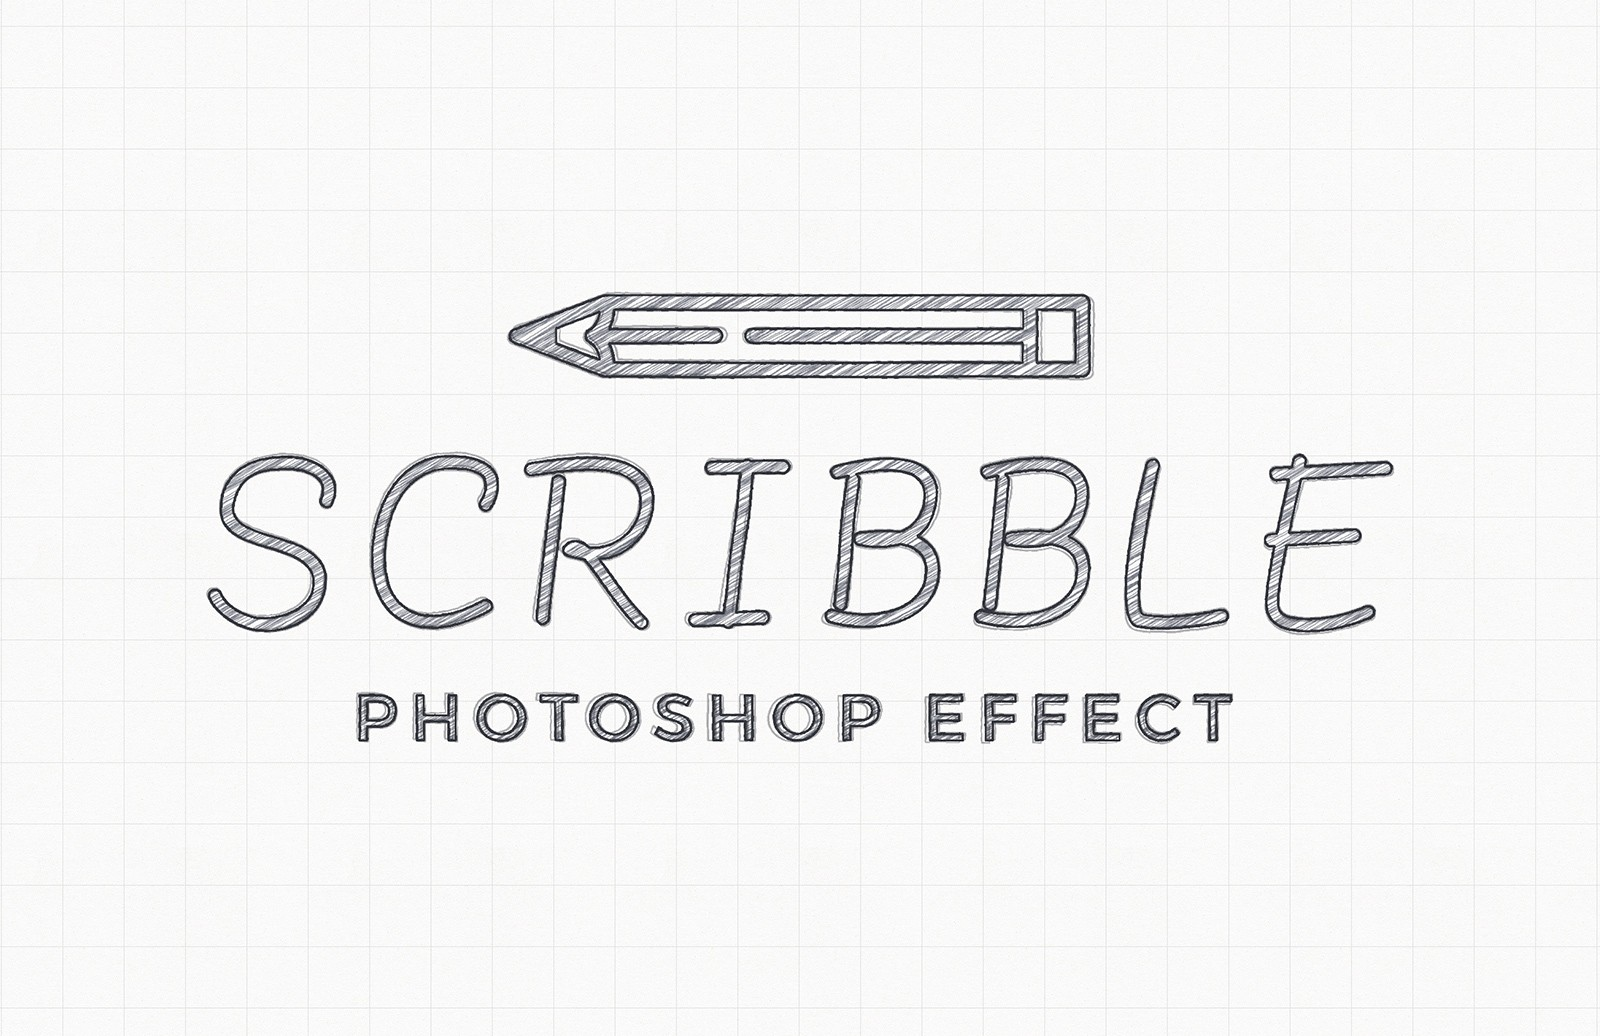 Scribble Photoshop Effect Mockup 1